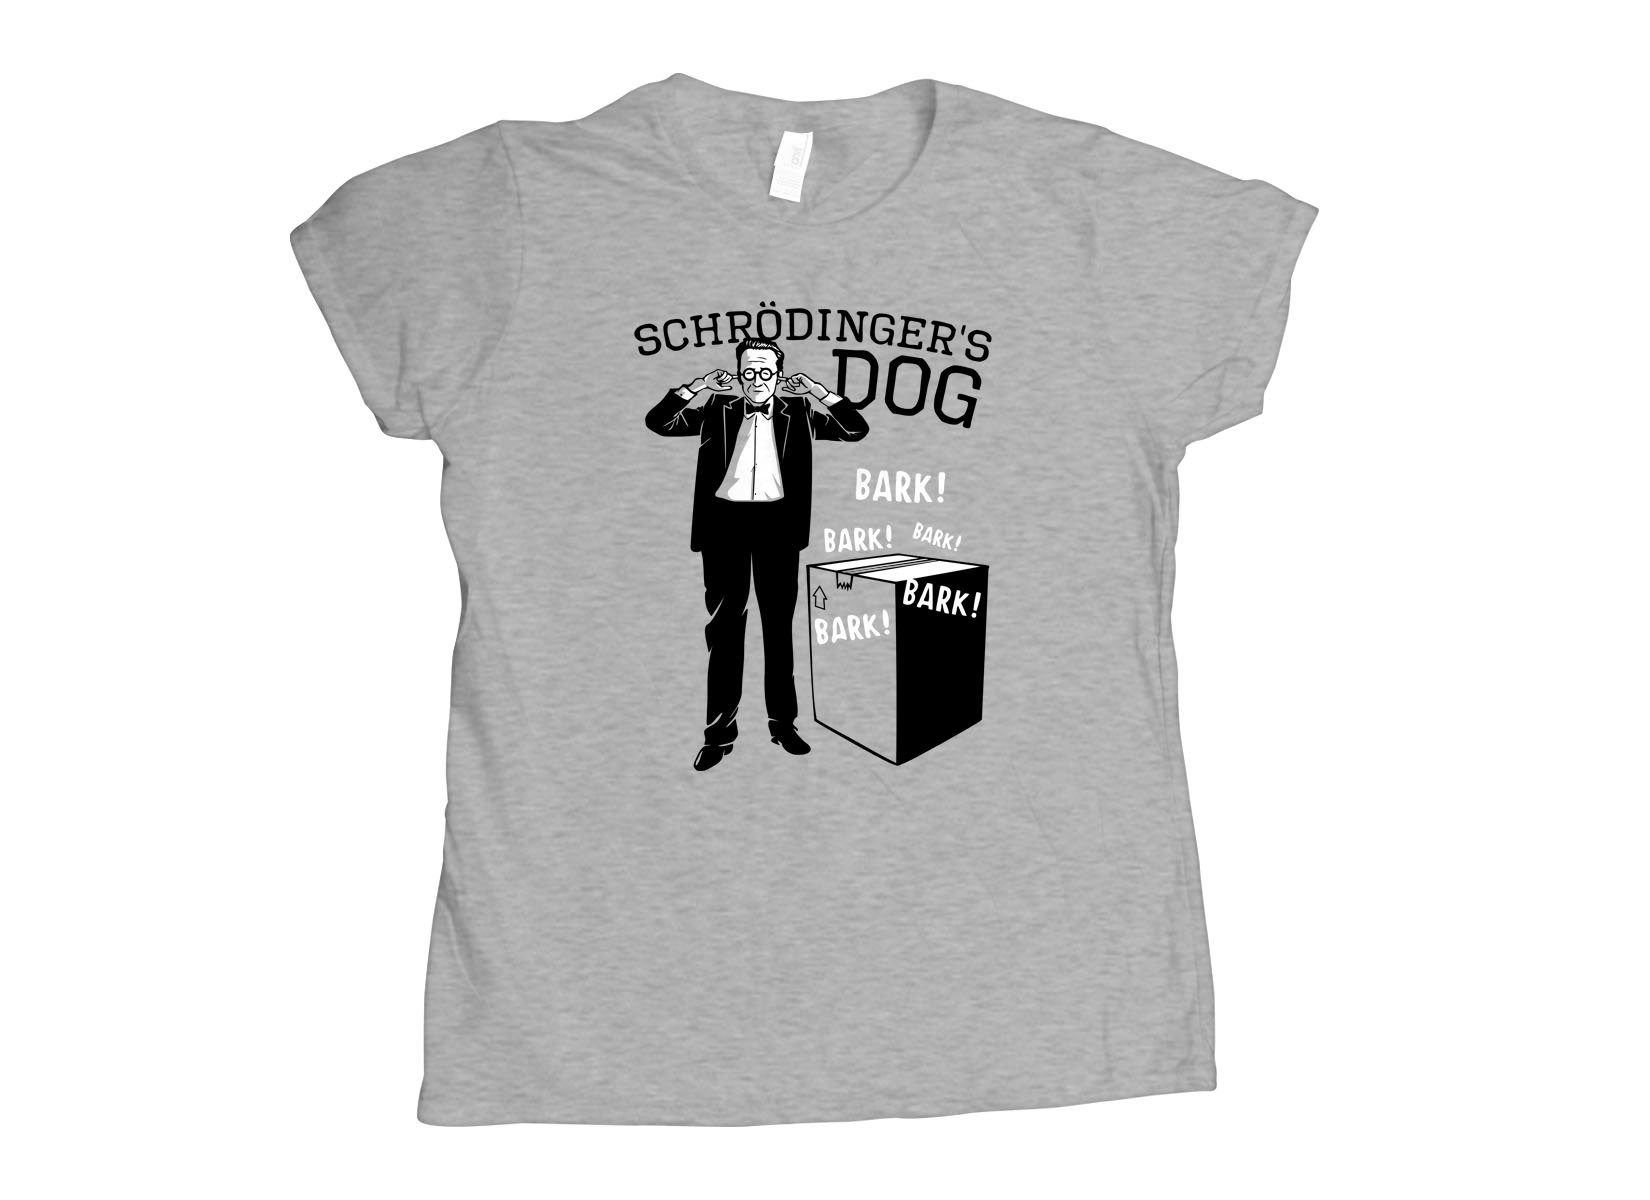 Schrodinger's Dog on Womens T-Shirt